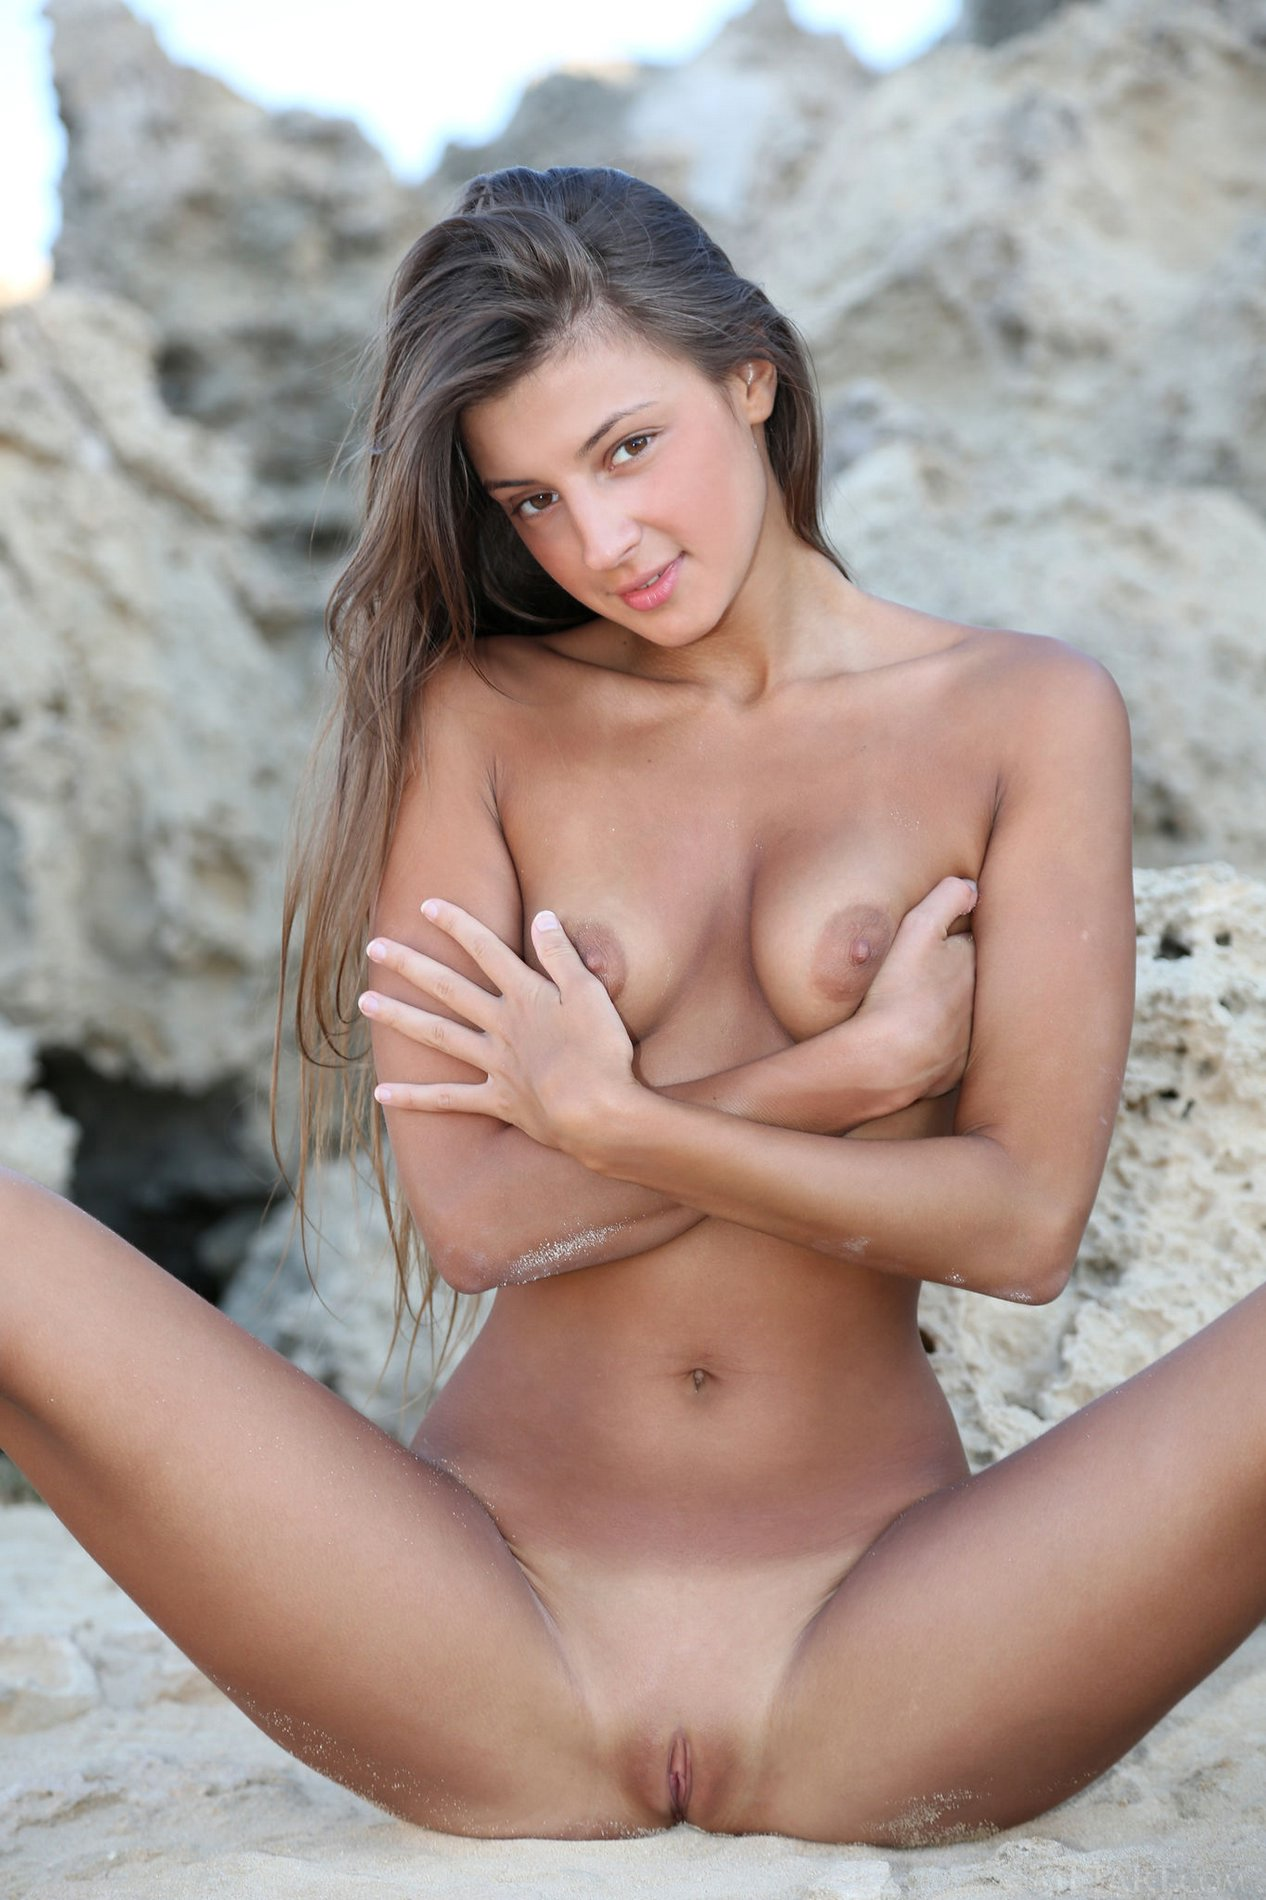 Amazing naked body